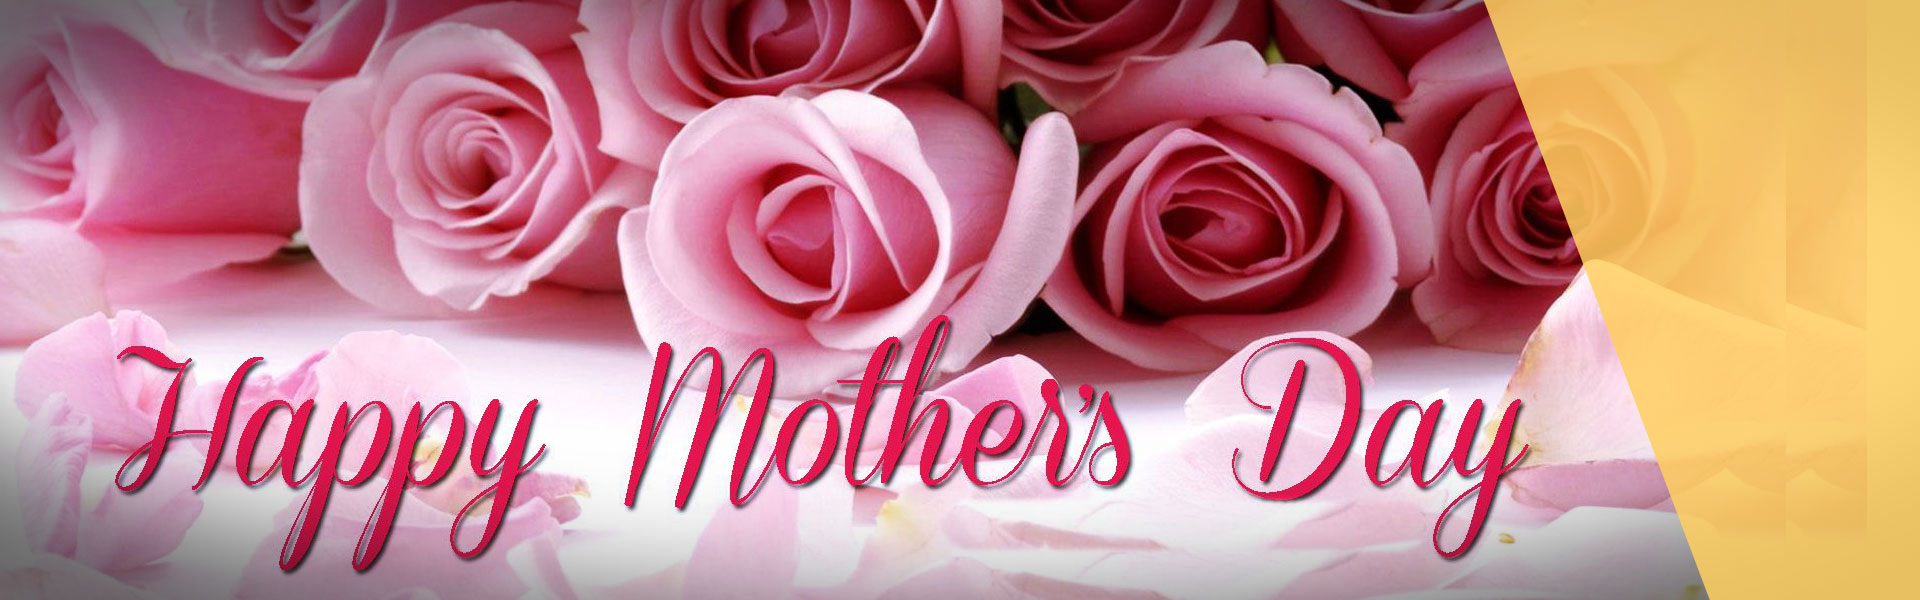 Somatic Massage Therapy & Spa is known for making Mother's Day a stand out, special event